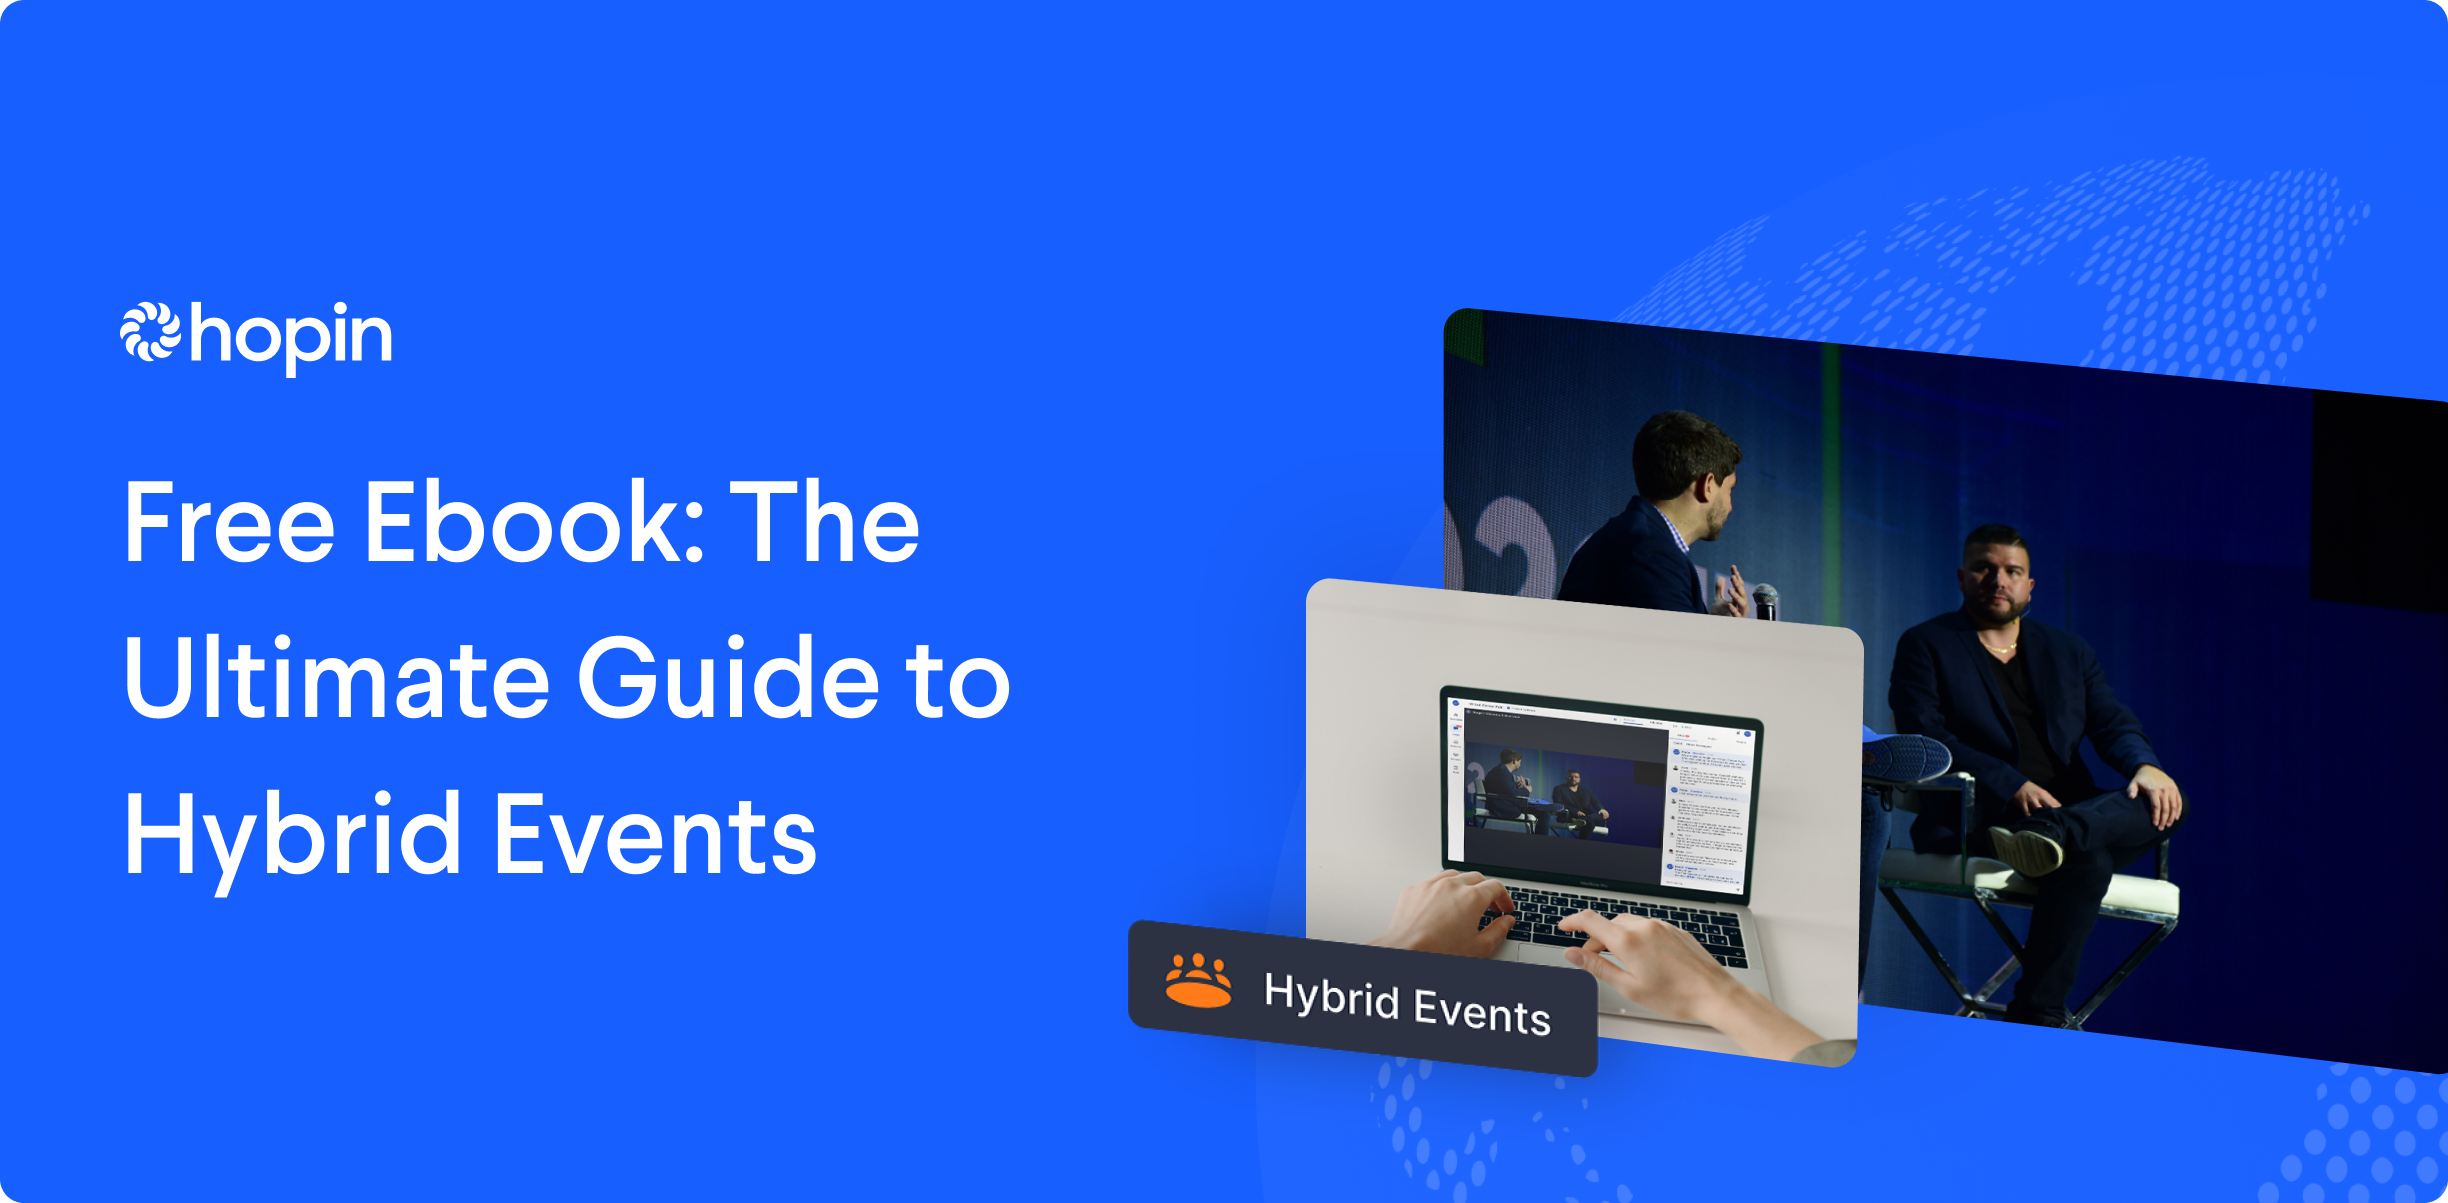 Hybrid events are here, and it's a new world of opportunity and engagement. Learn why everyone is buzzing about hybrid and why it's the right choice for your next event.